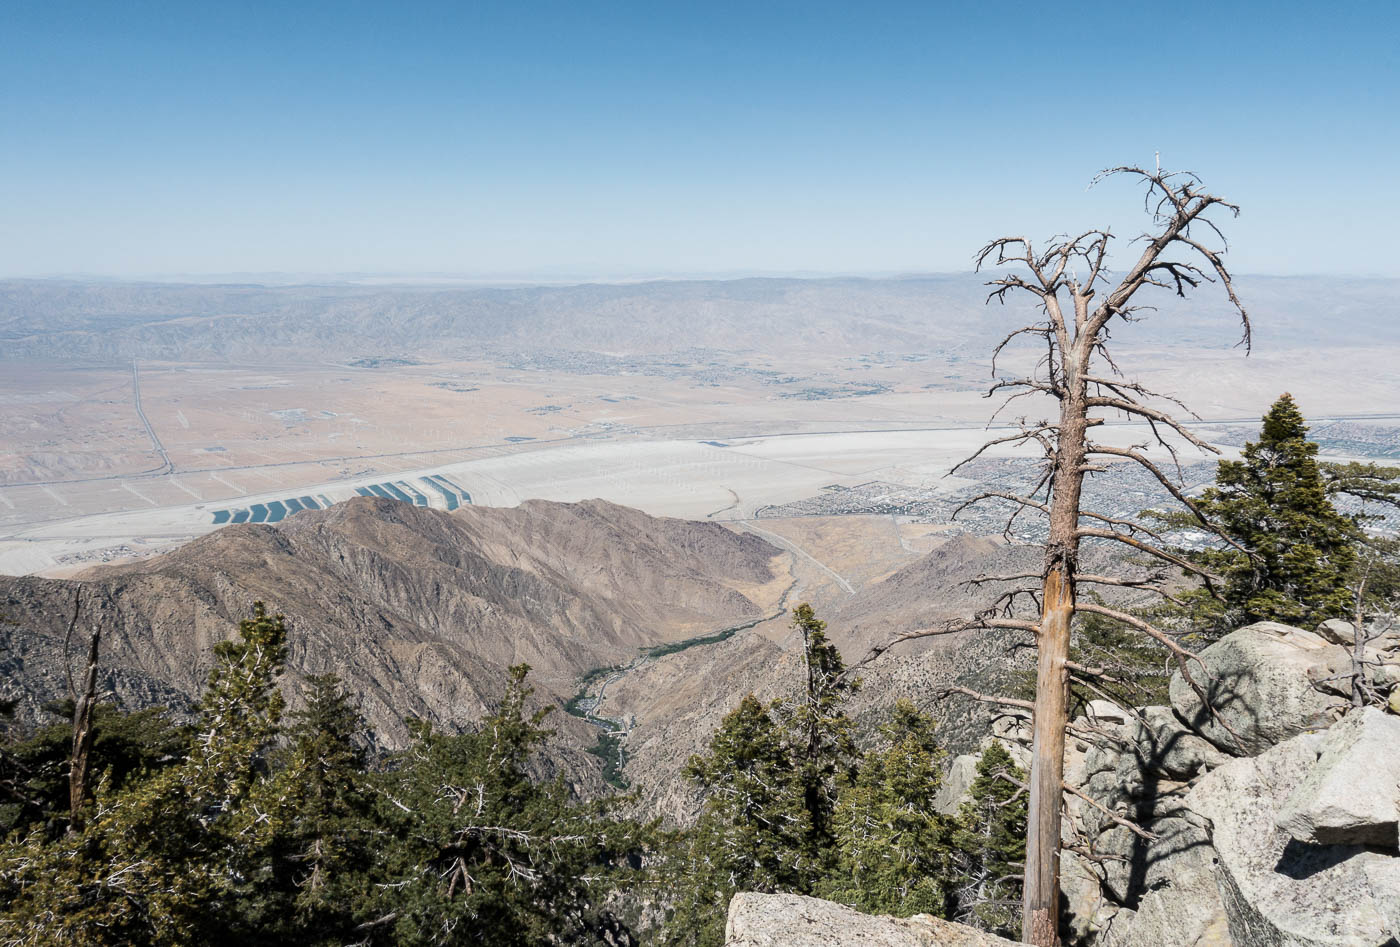 Palm Springs Aerial Tram View at the Top | The Chic Diary.jpg